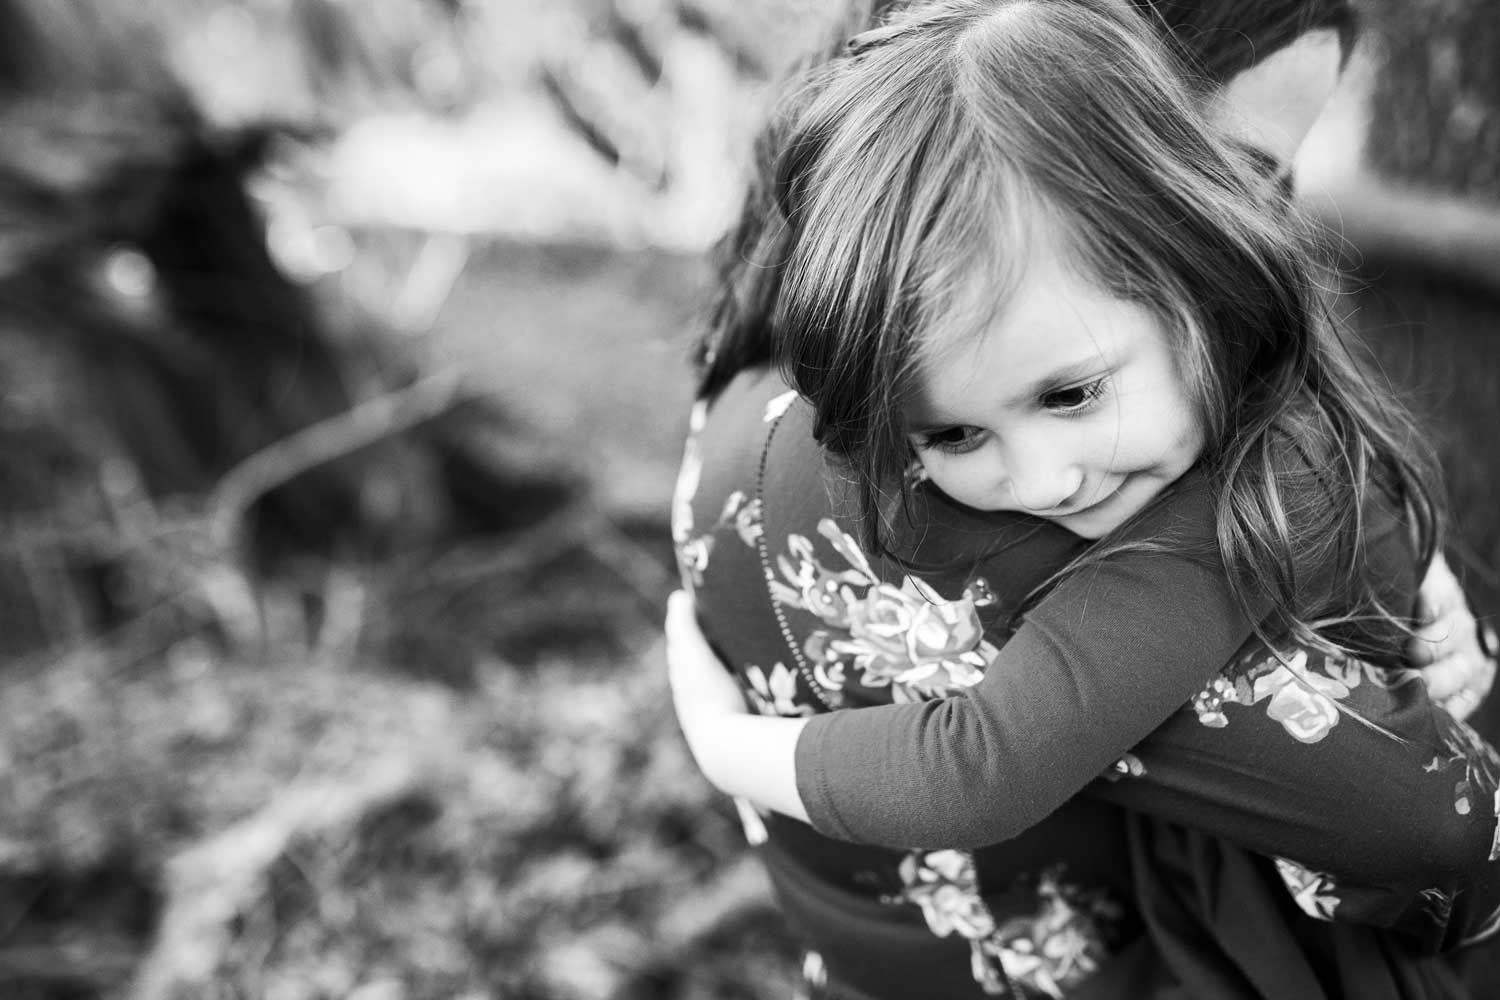 Daughter embraces mother as they hug during a family photo session in Roseville, California